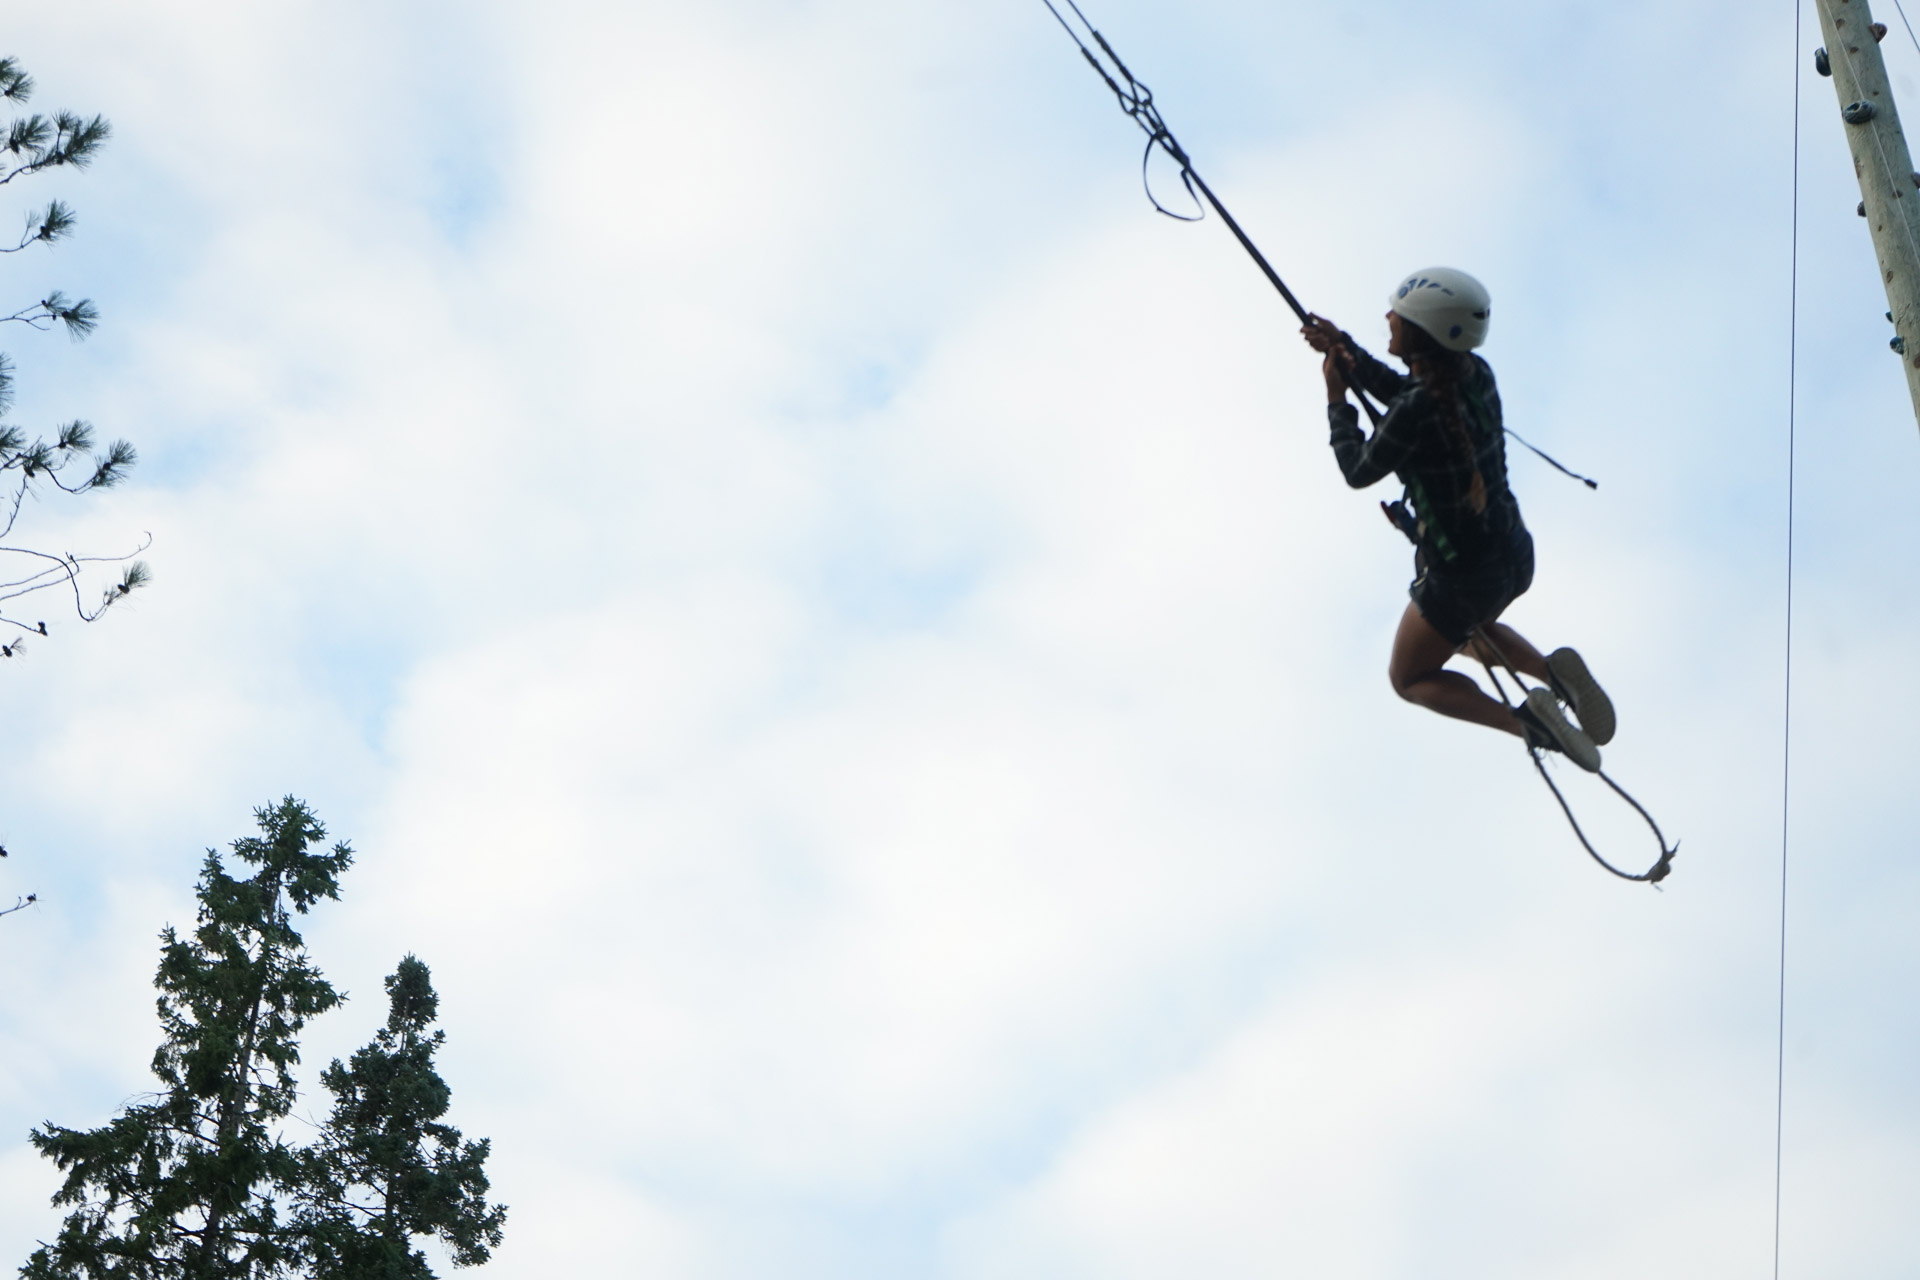 A young person swinging on a rope